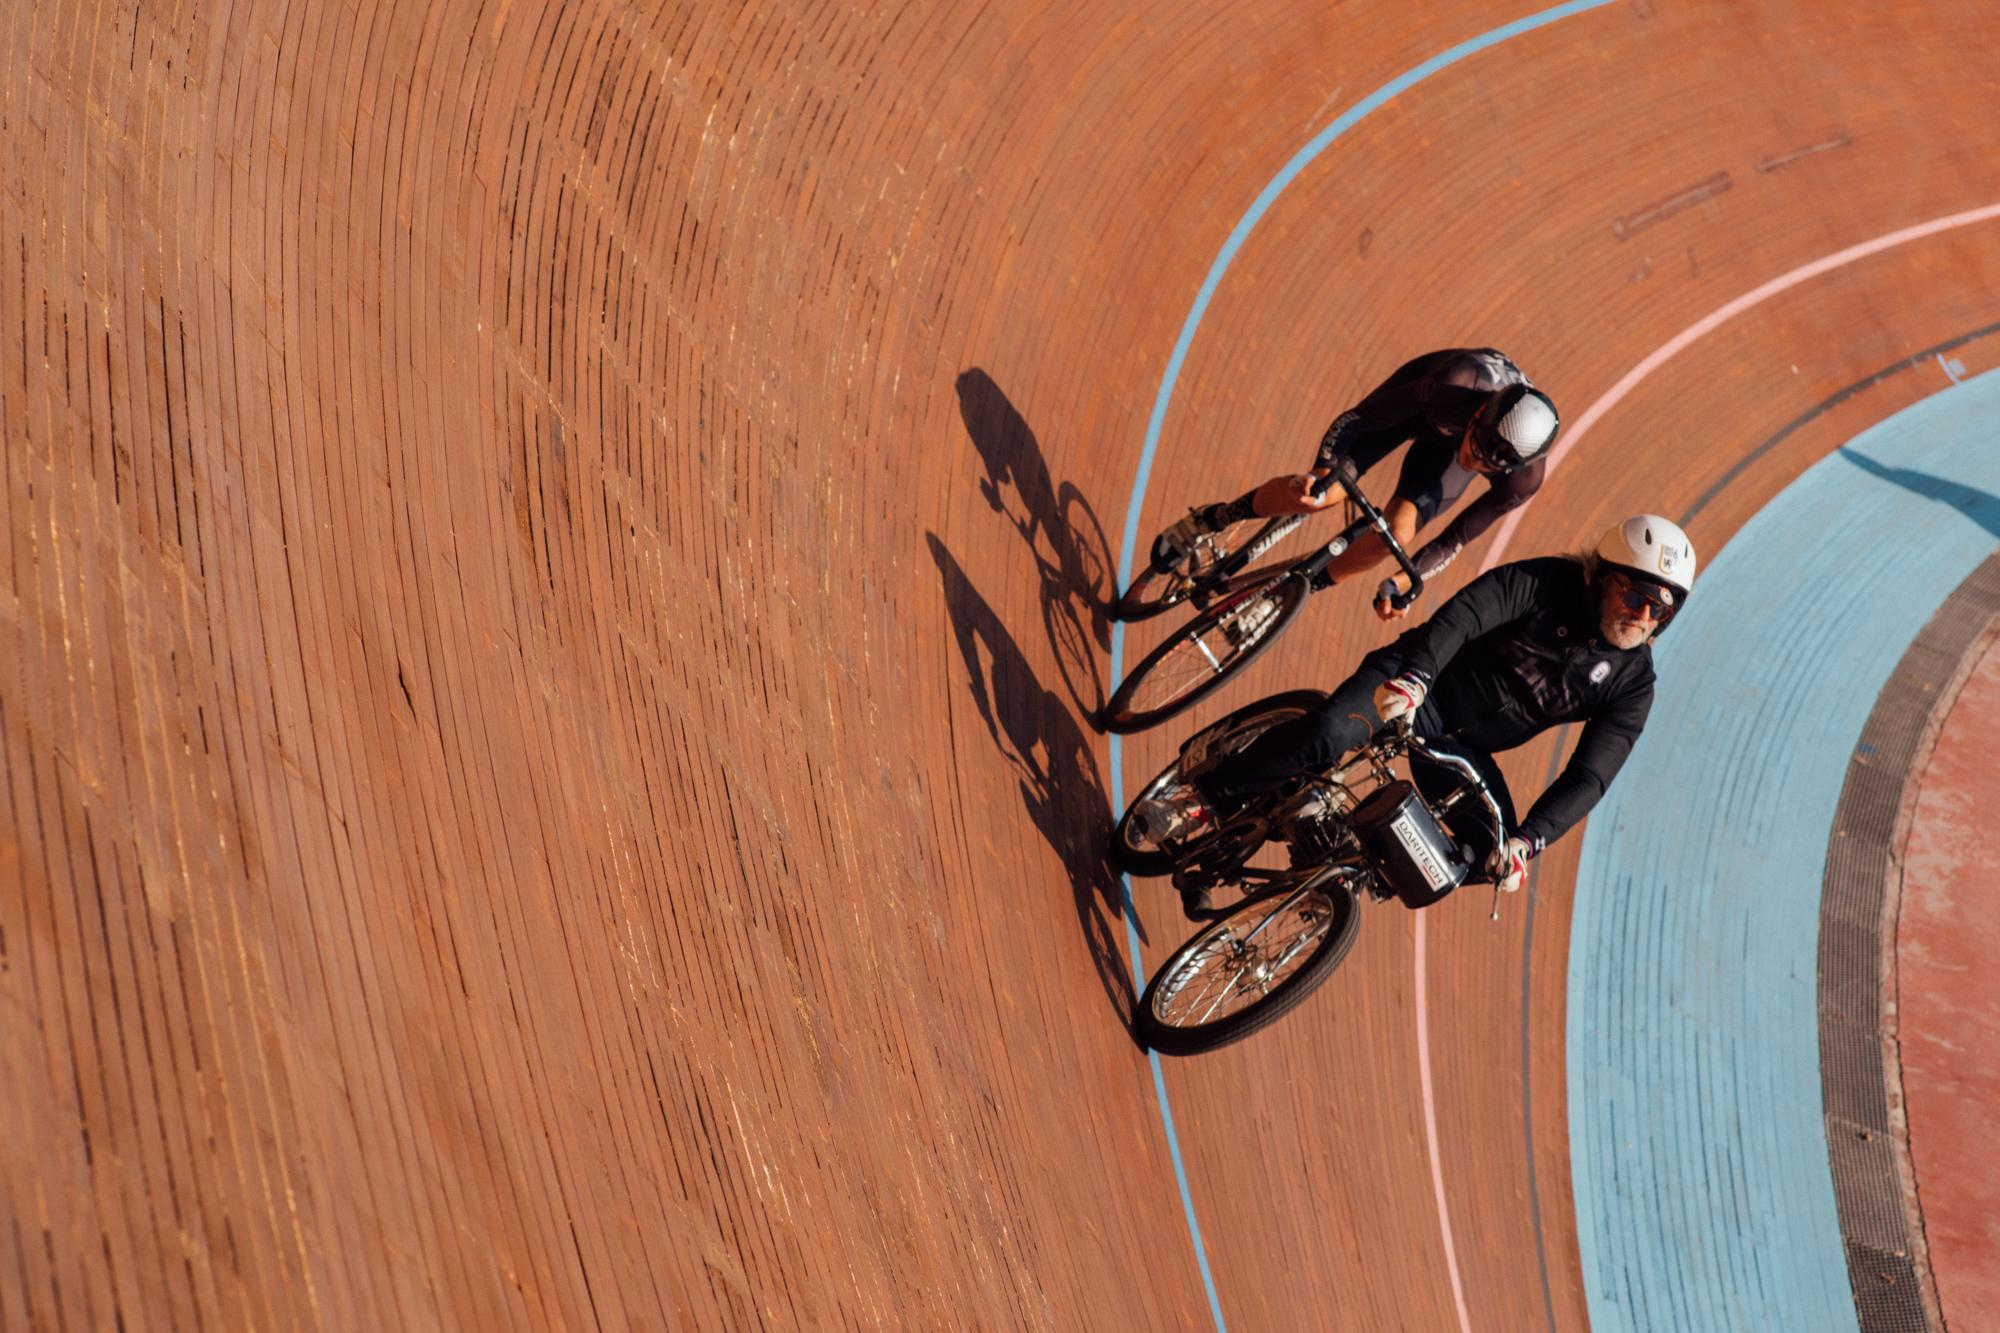 Alberto Masi and the Vigorelli Velodrome